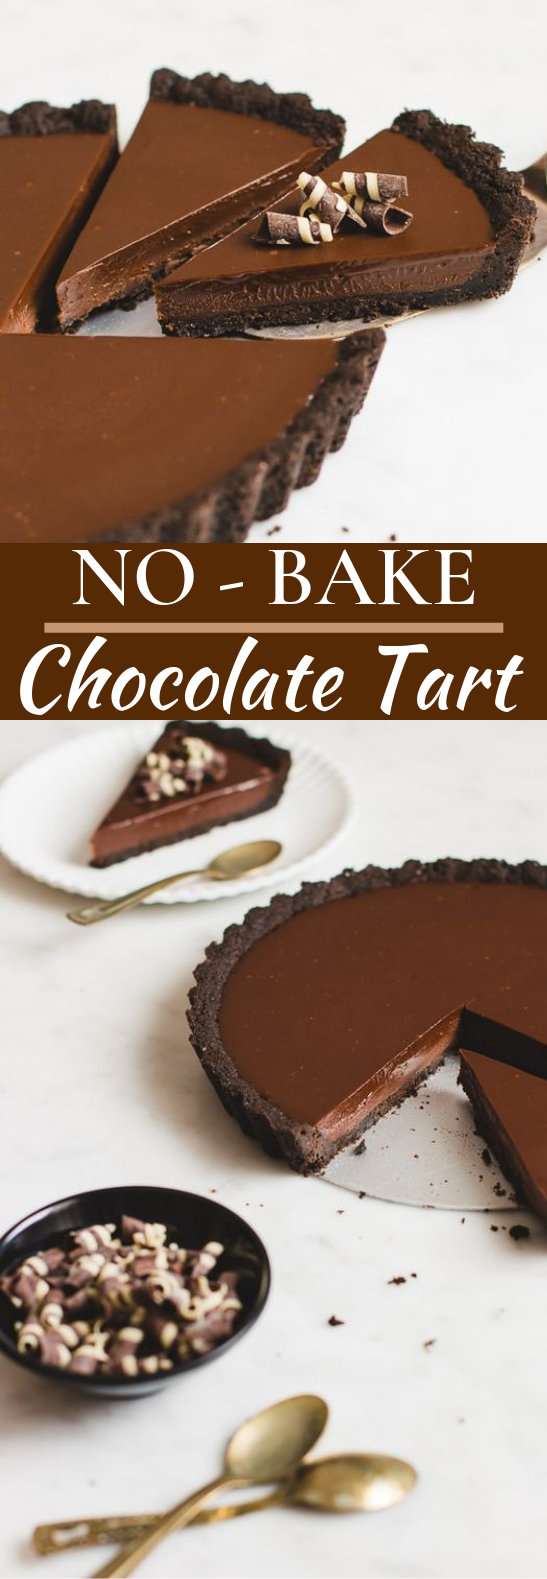 No-Bake Chocolate Tart #desserts #chocolate